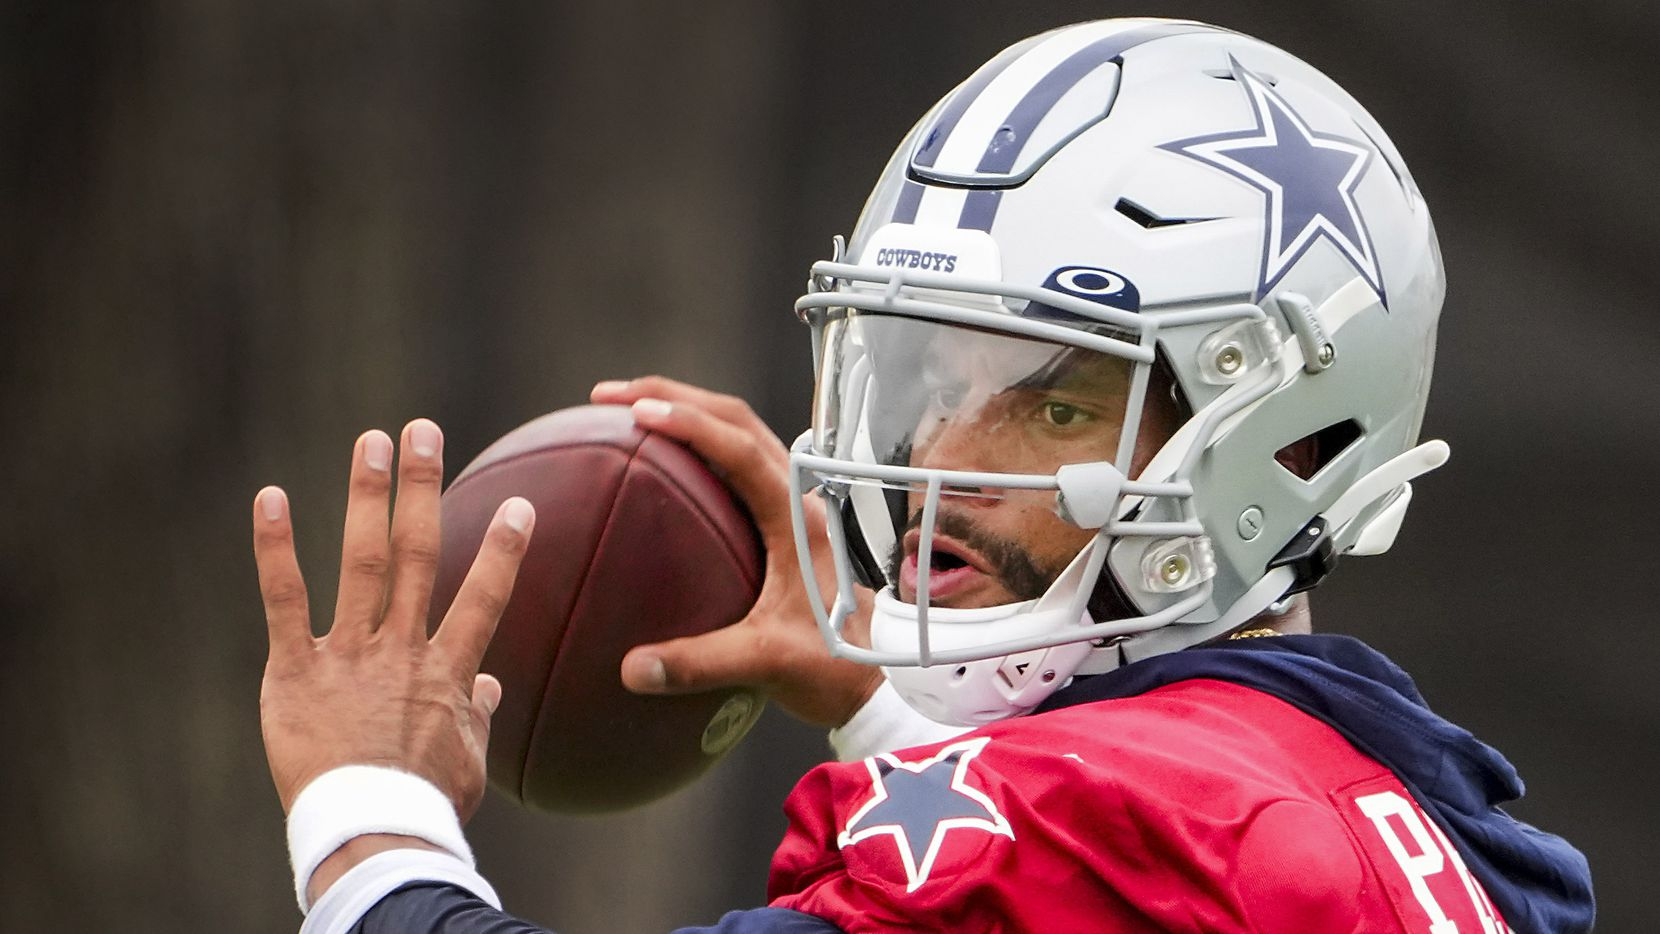 Dallas Cowboys quarterback Dak Prescott (4) throws a pass during a practice at training camp on Saturday, July 24, 2021, in Oxnard, Calif. (Smiley N. Pool/The Dallas Morning News)